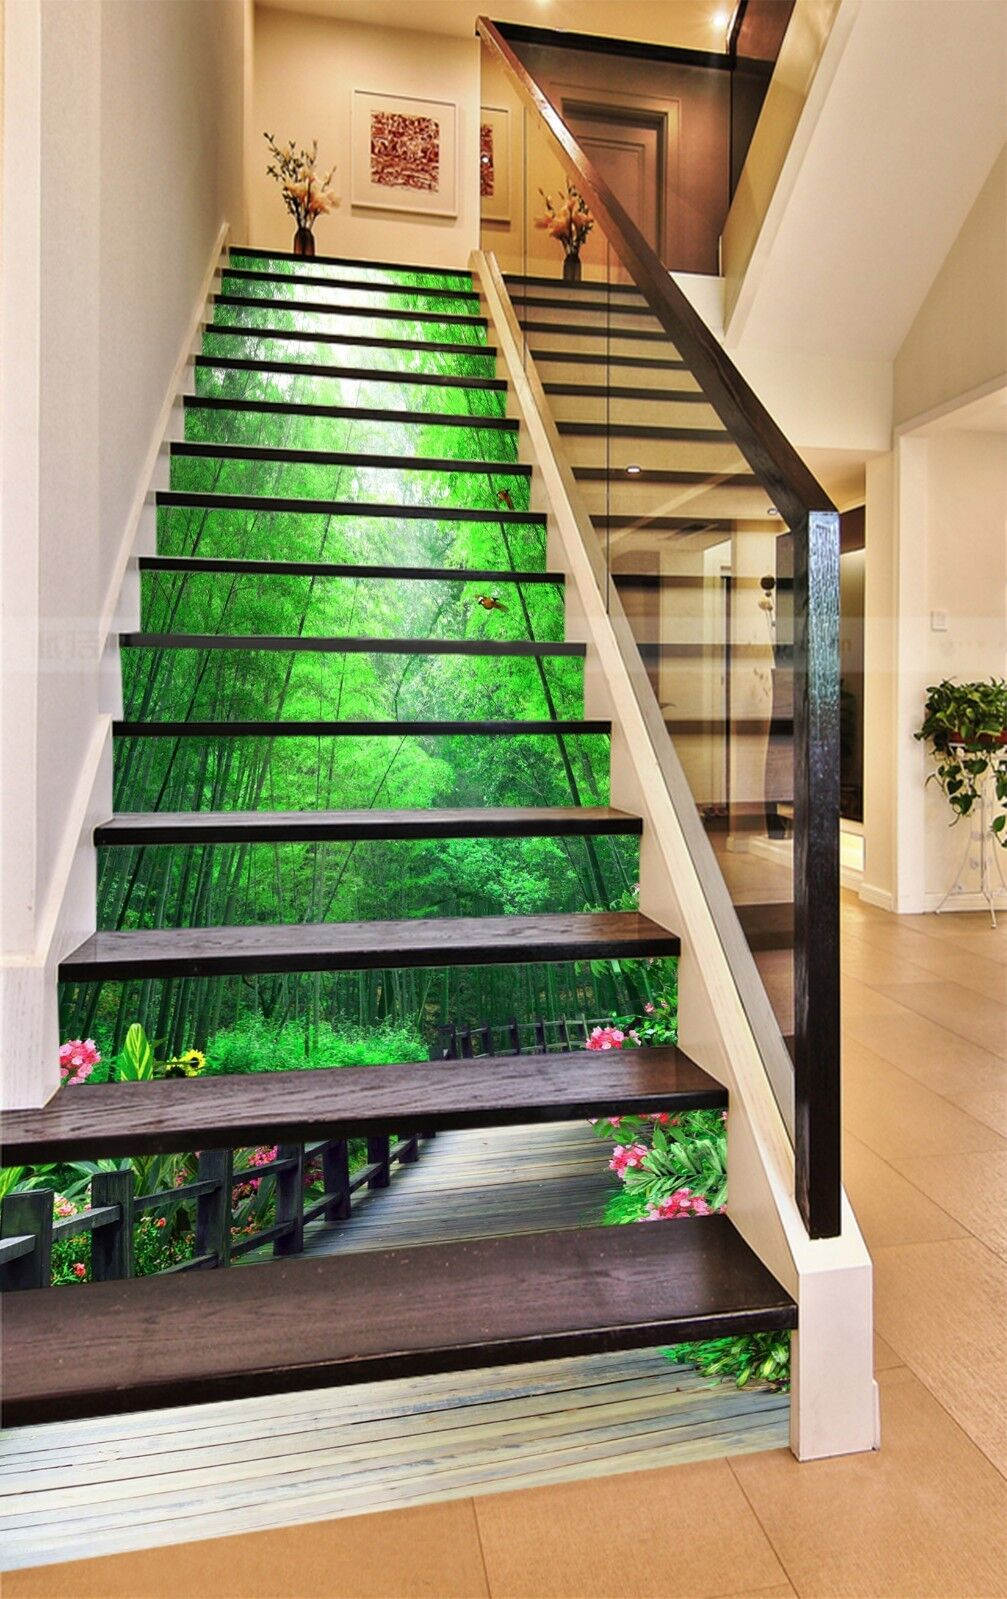 3D Bamboo Road 3 Stair Risers Decoration Photo Mural Vinyl Decal Wallpaper UK